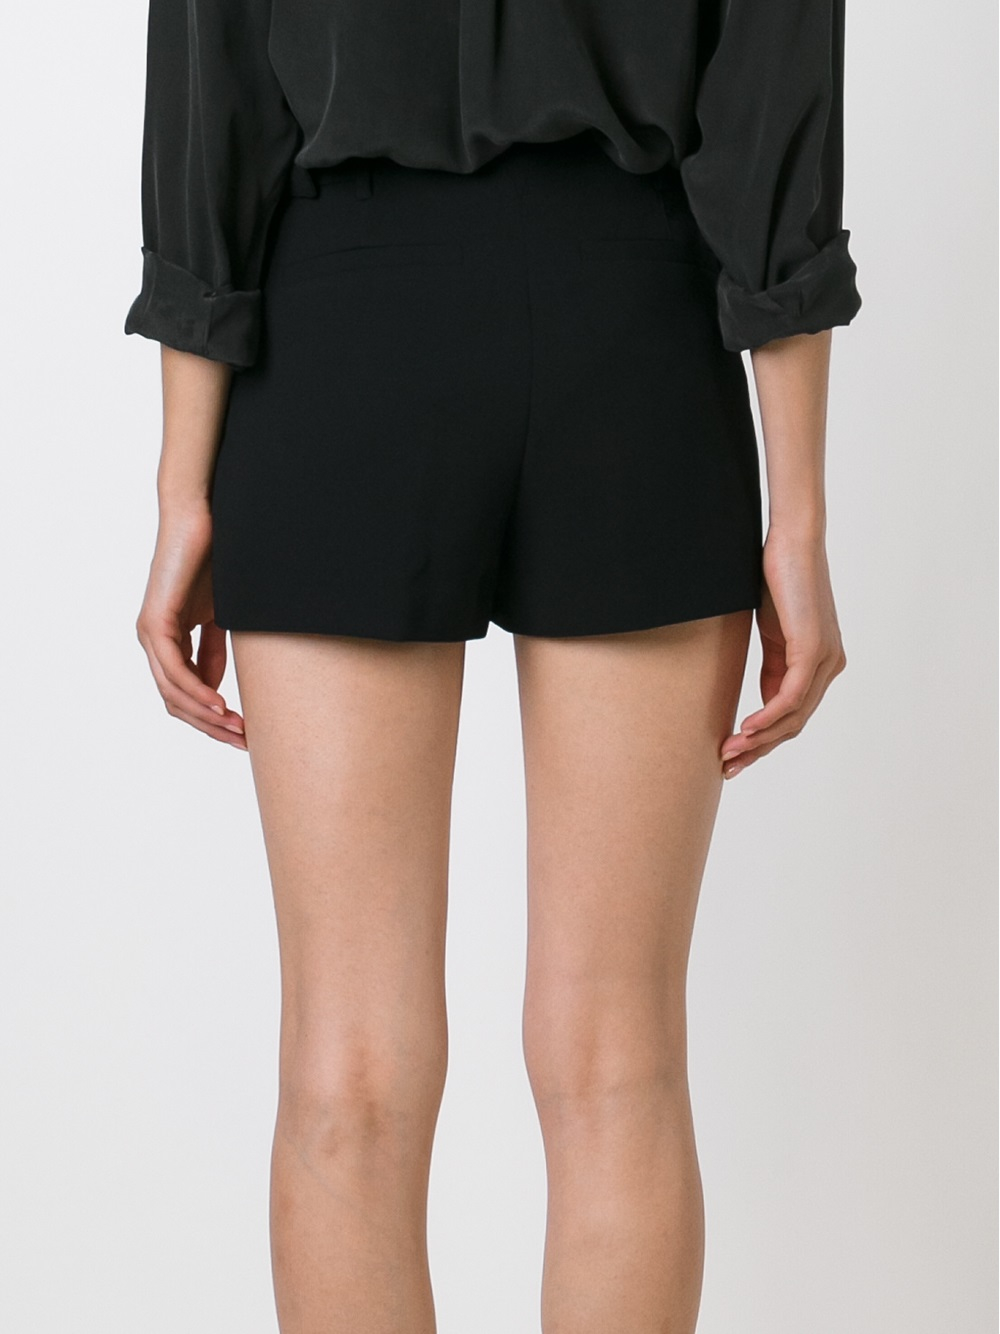 T by Alexander Wang - Denim x Alexander Wang Bite High-Rise Frayed Hem Denim Shorts al9mg7p1yos.gq, offering the modern energy, style and personalized service of Saks Fifth Avenue stores, in an enhanced, easy-to-navigate shopping experience.